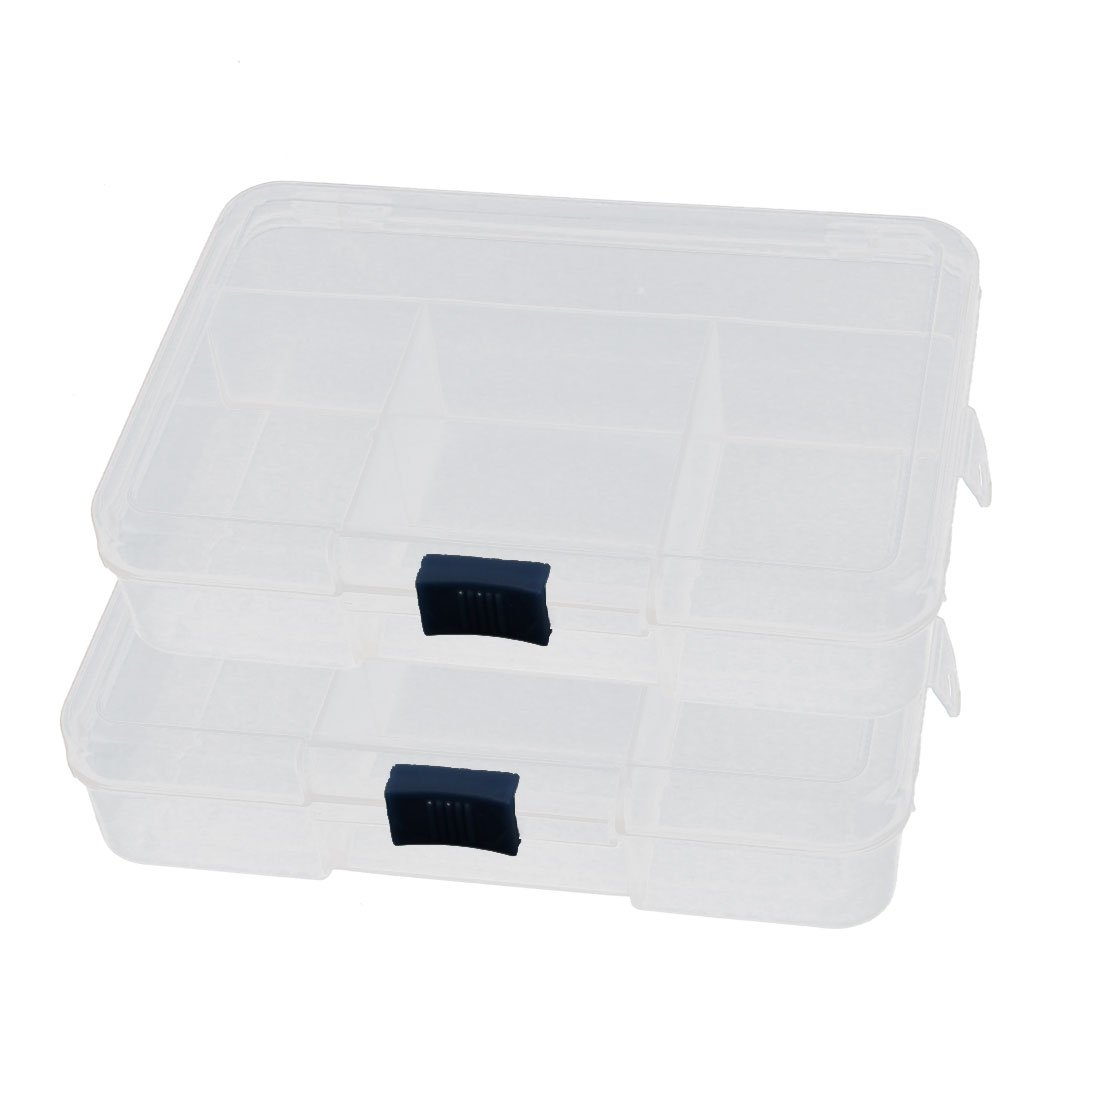 2 x Plastic 5 Components Earrings Jewelry Organizer Storage Box Holder uxcell a14100700ux0059